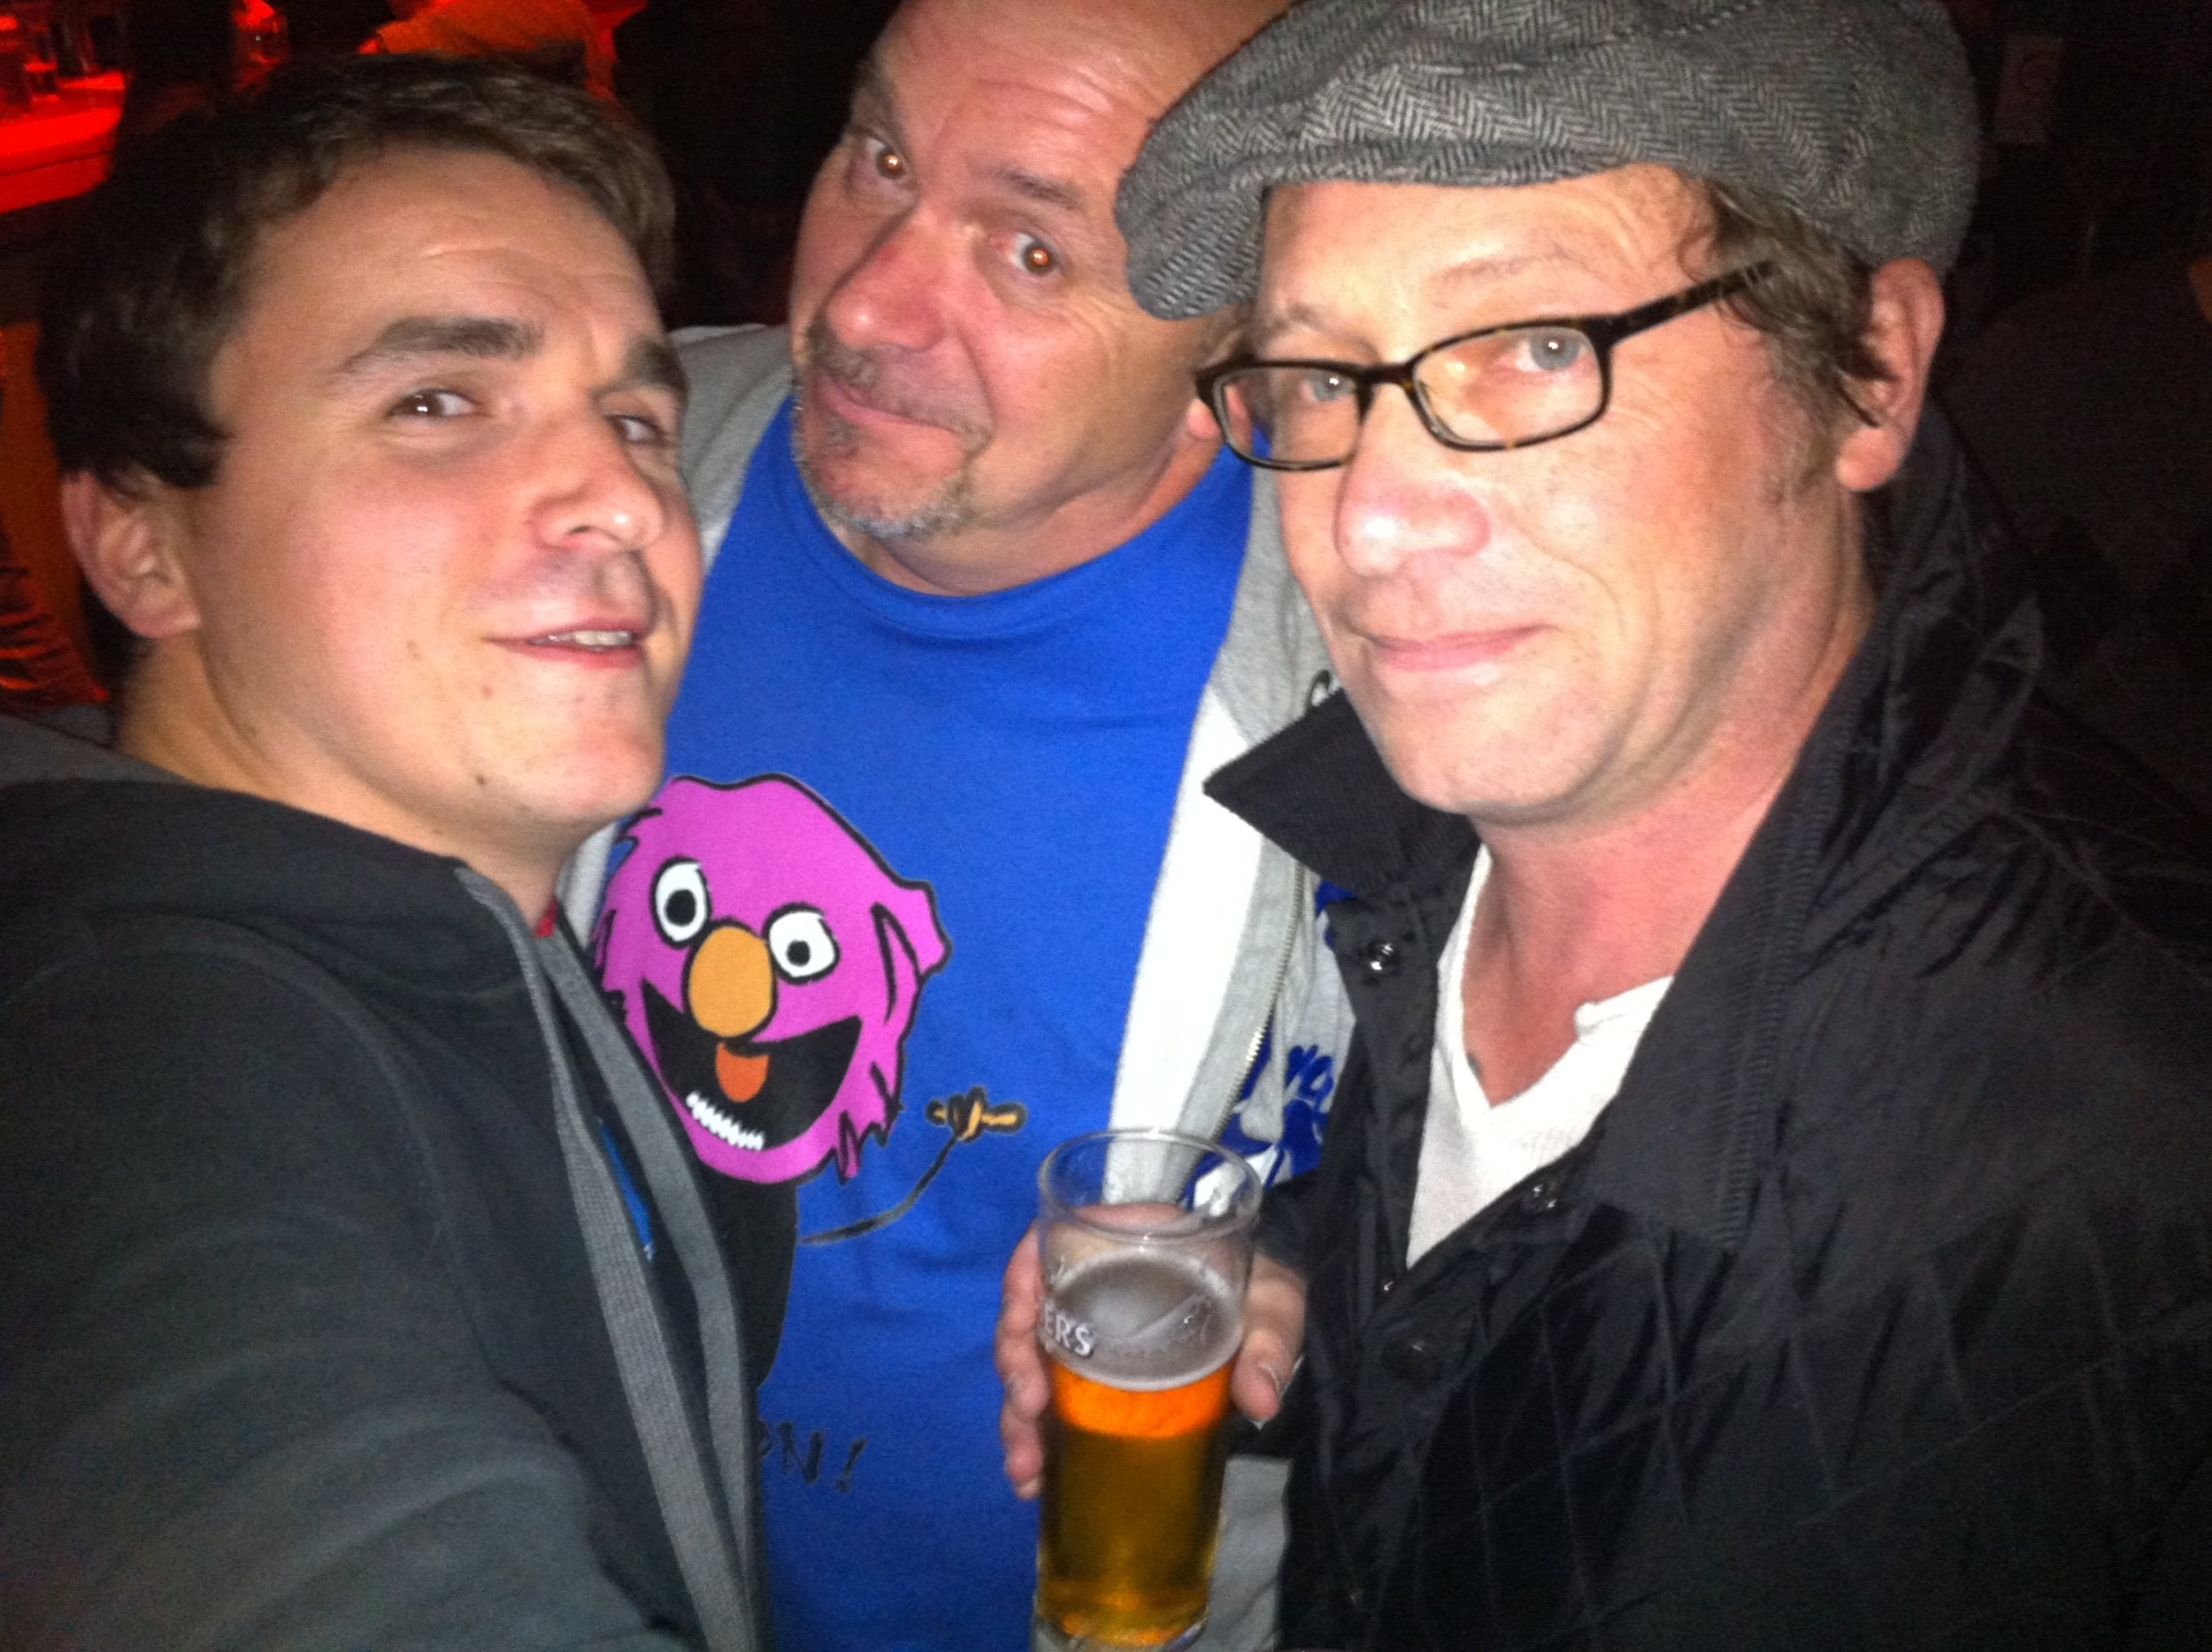 scott-and-nick-with-simon-fowler-from-ocean-colour-scene_6466520355_o.jpg